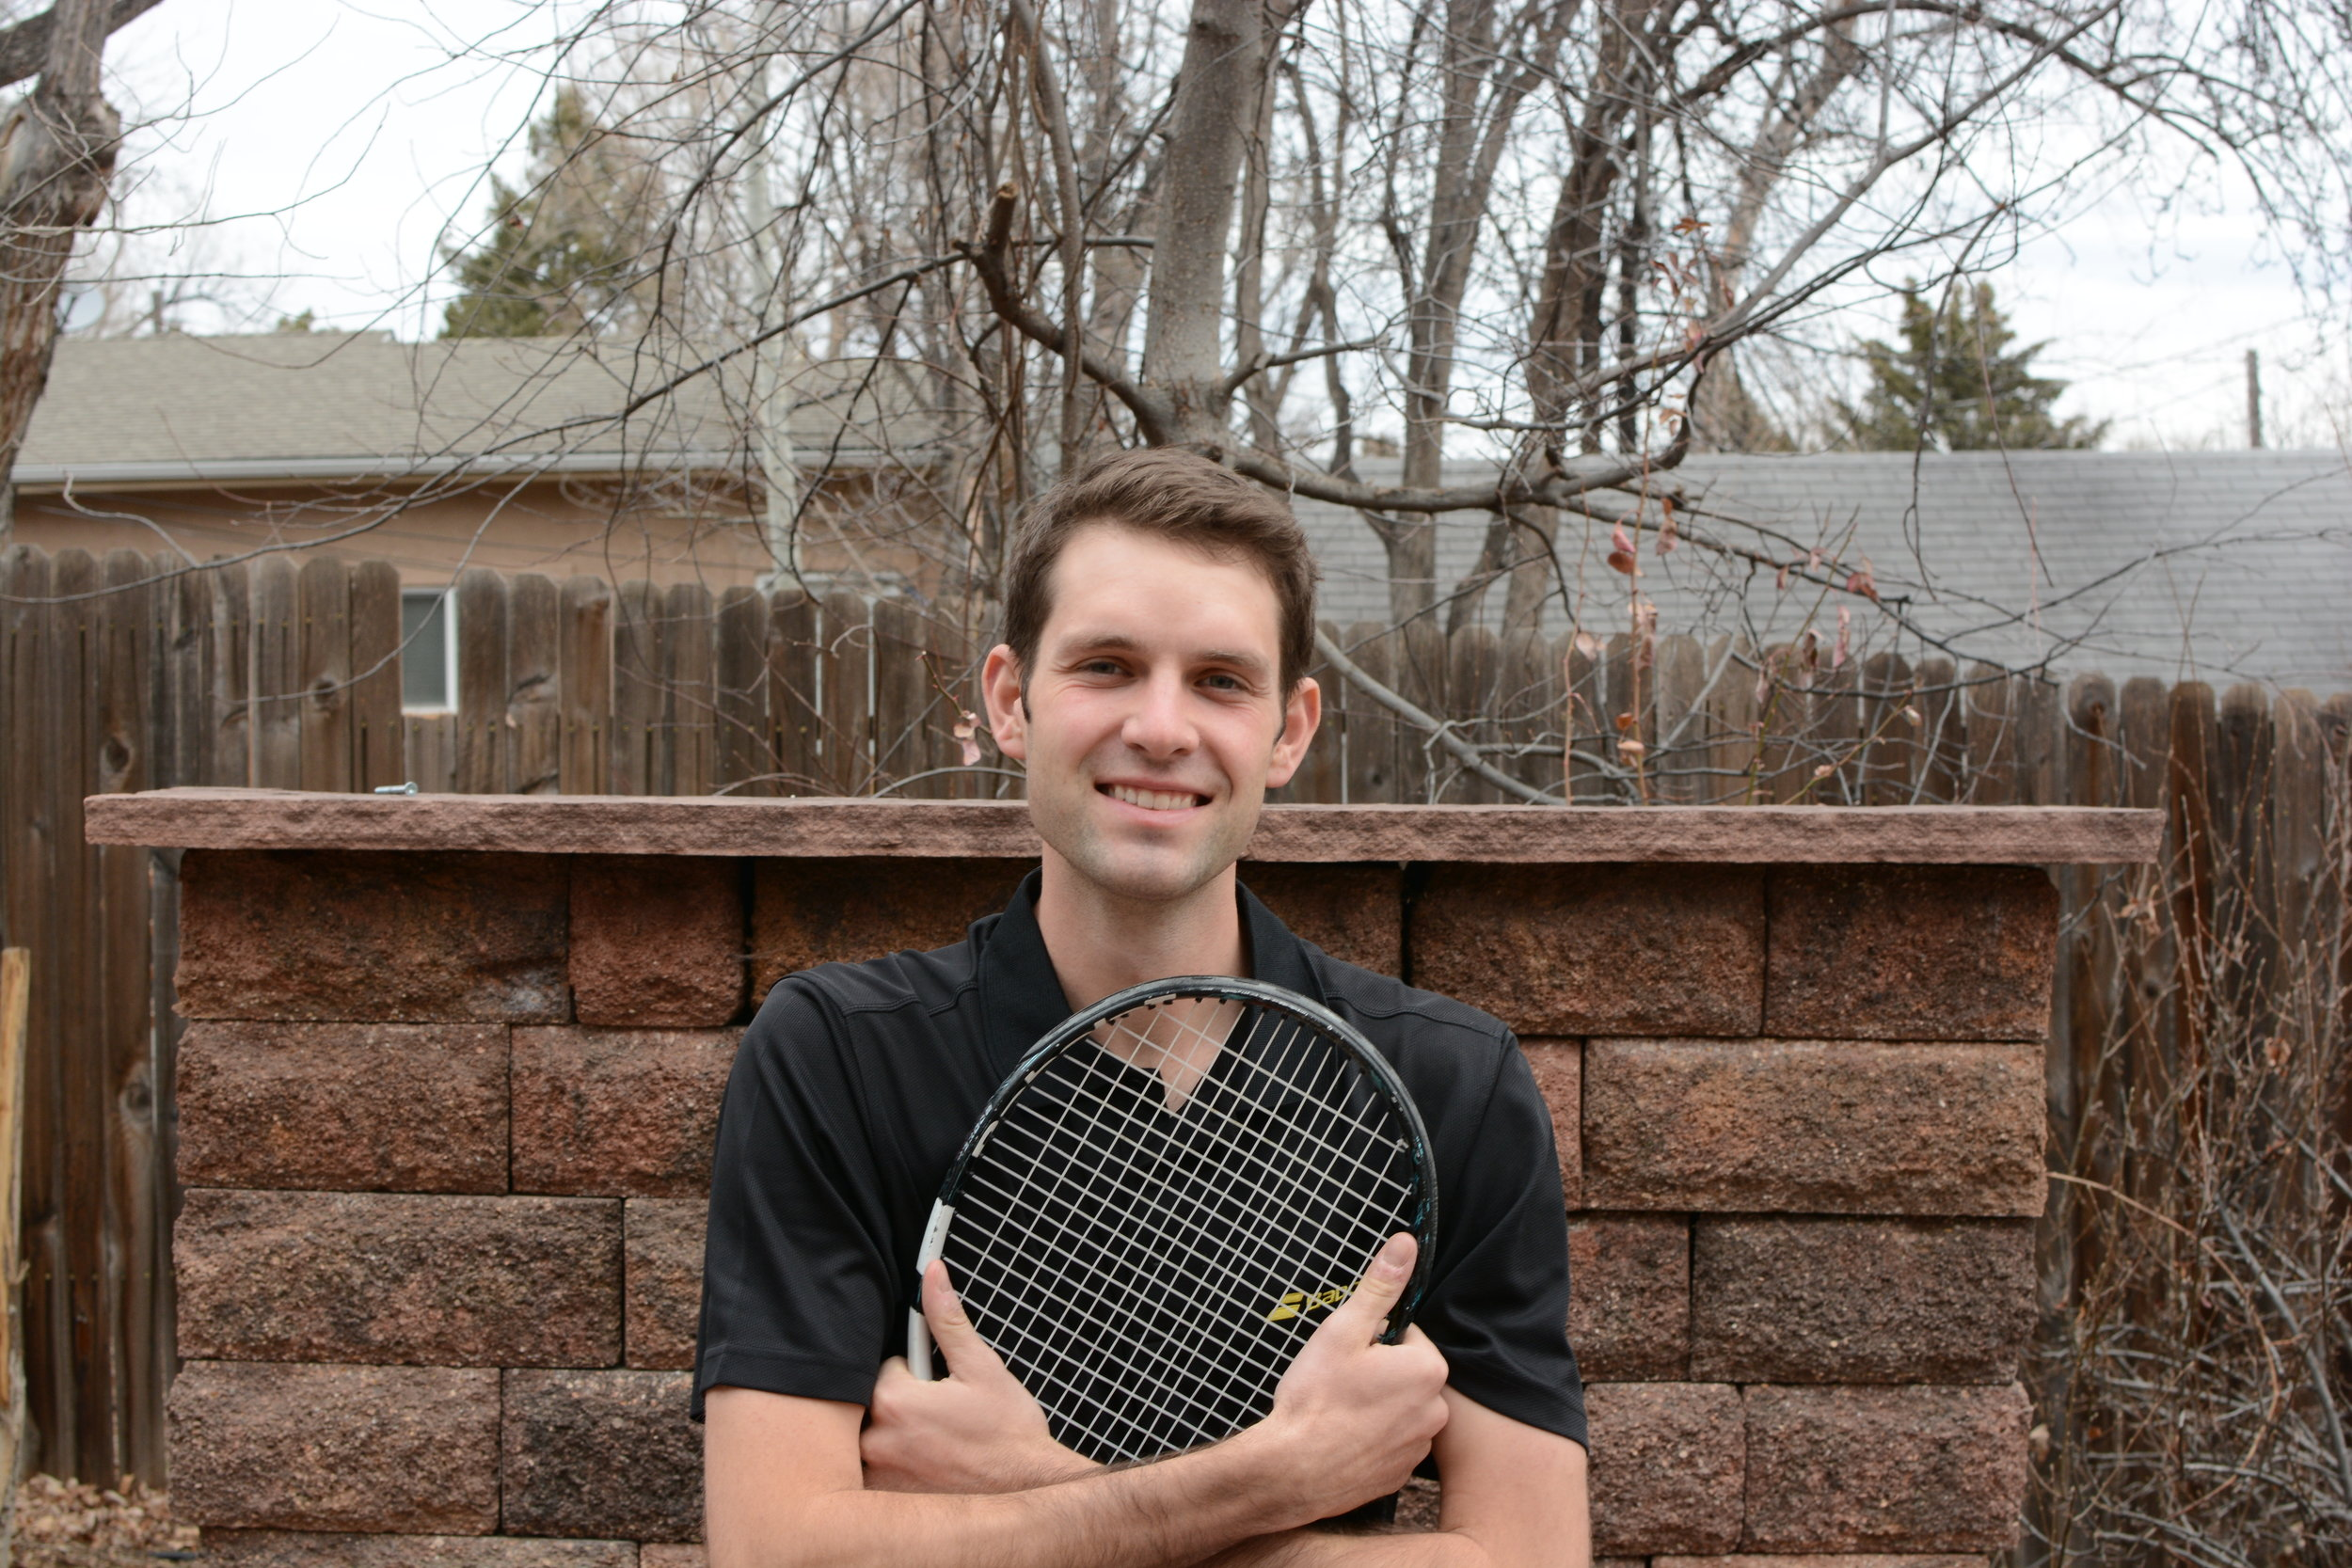 Parker Curry - - Colorado native- Won high school state tournament twice- Attended University of Colorado - Tennis and pickleball pro at the Broadmoor Hotel for three seasonsPickleball: 2018 - Bronze USAPA Great Plains Regional Doubles / Silver US Open Championship / Gold Grand Canyon State Games. 2017 - Silver USAPA Great Plains Regional Doubles